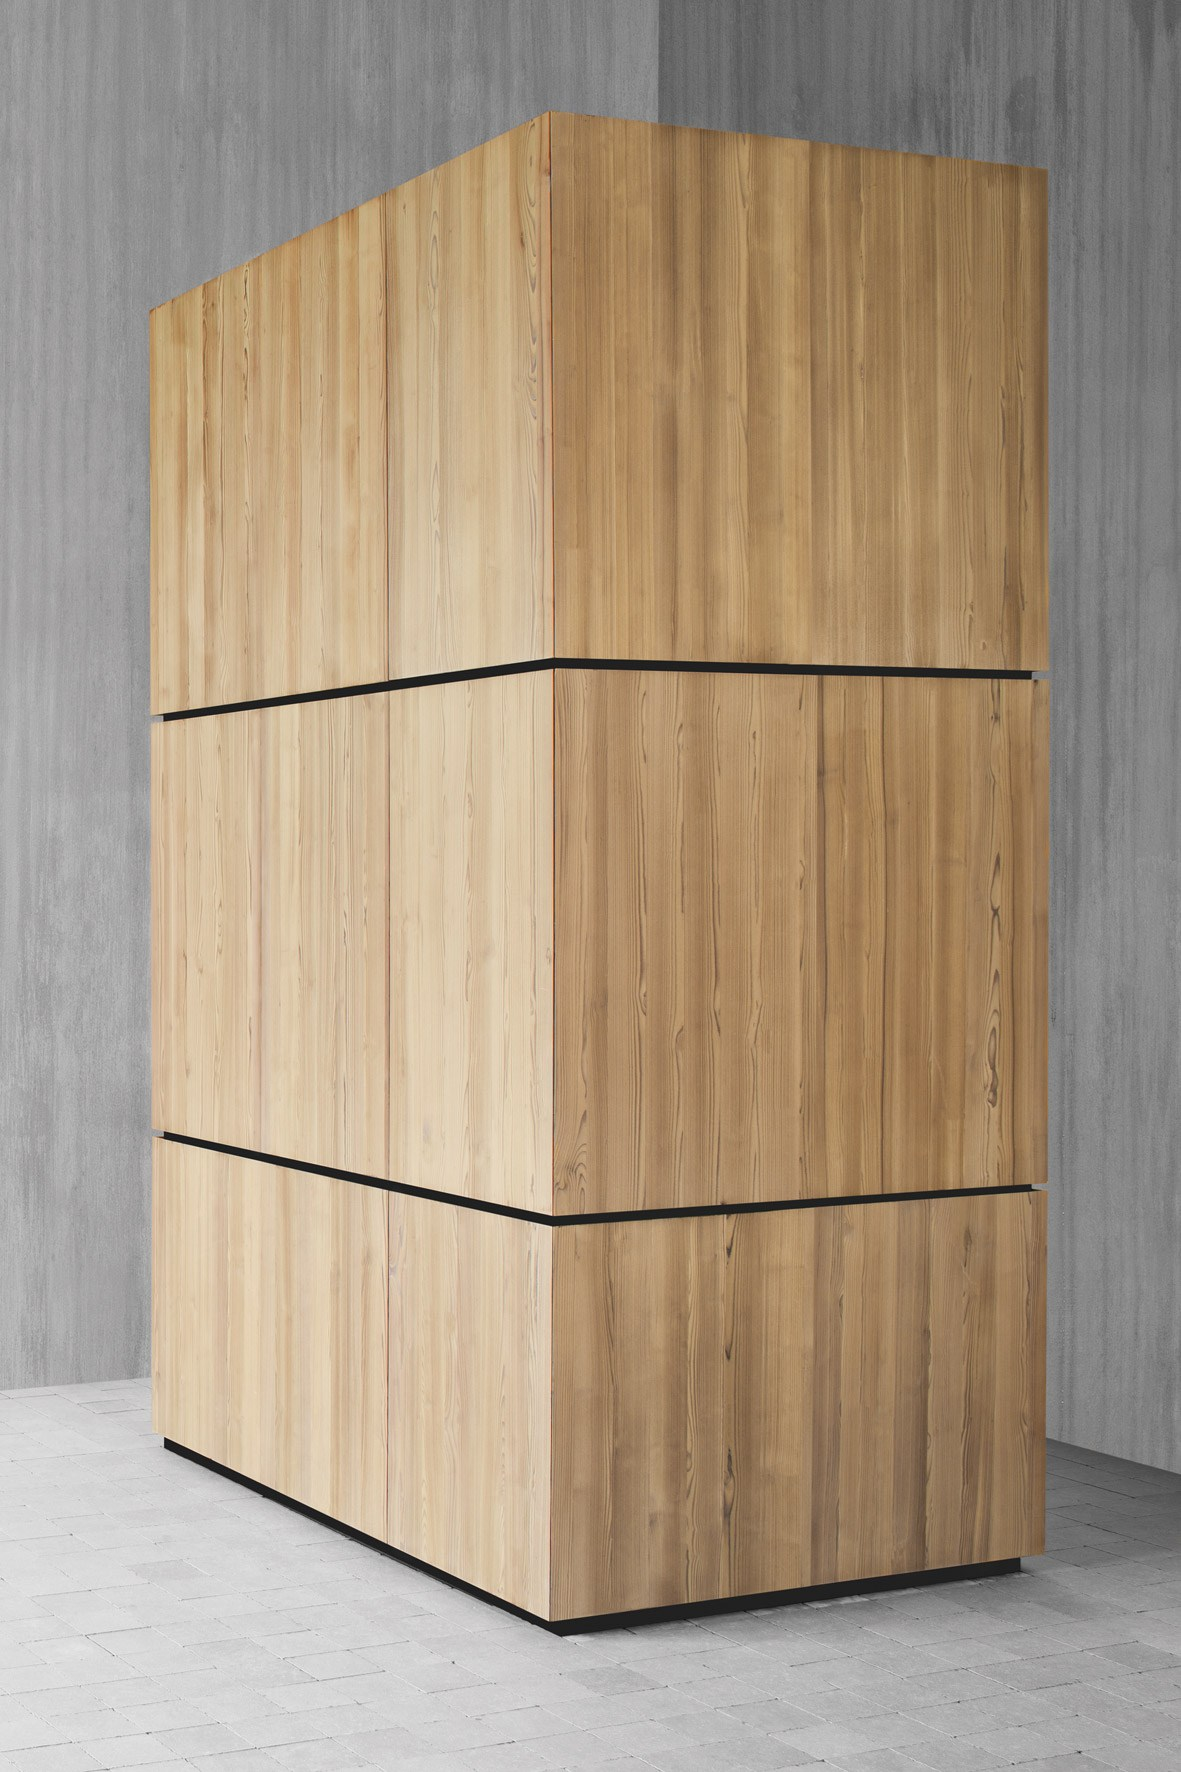 armoire de cuisine en bois massif avec four natural skin monoliti by minacciolo design arch. Black Bedroom Furniture Sets. Home Design Ideas